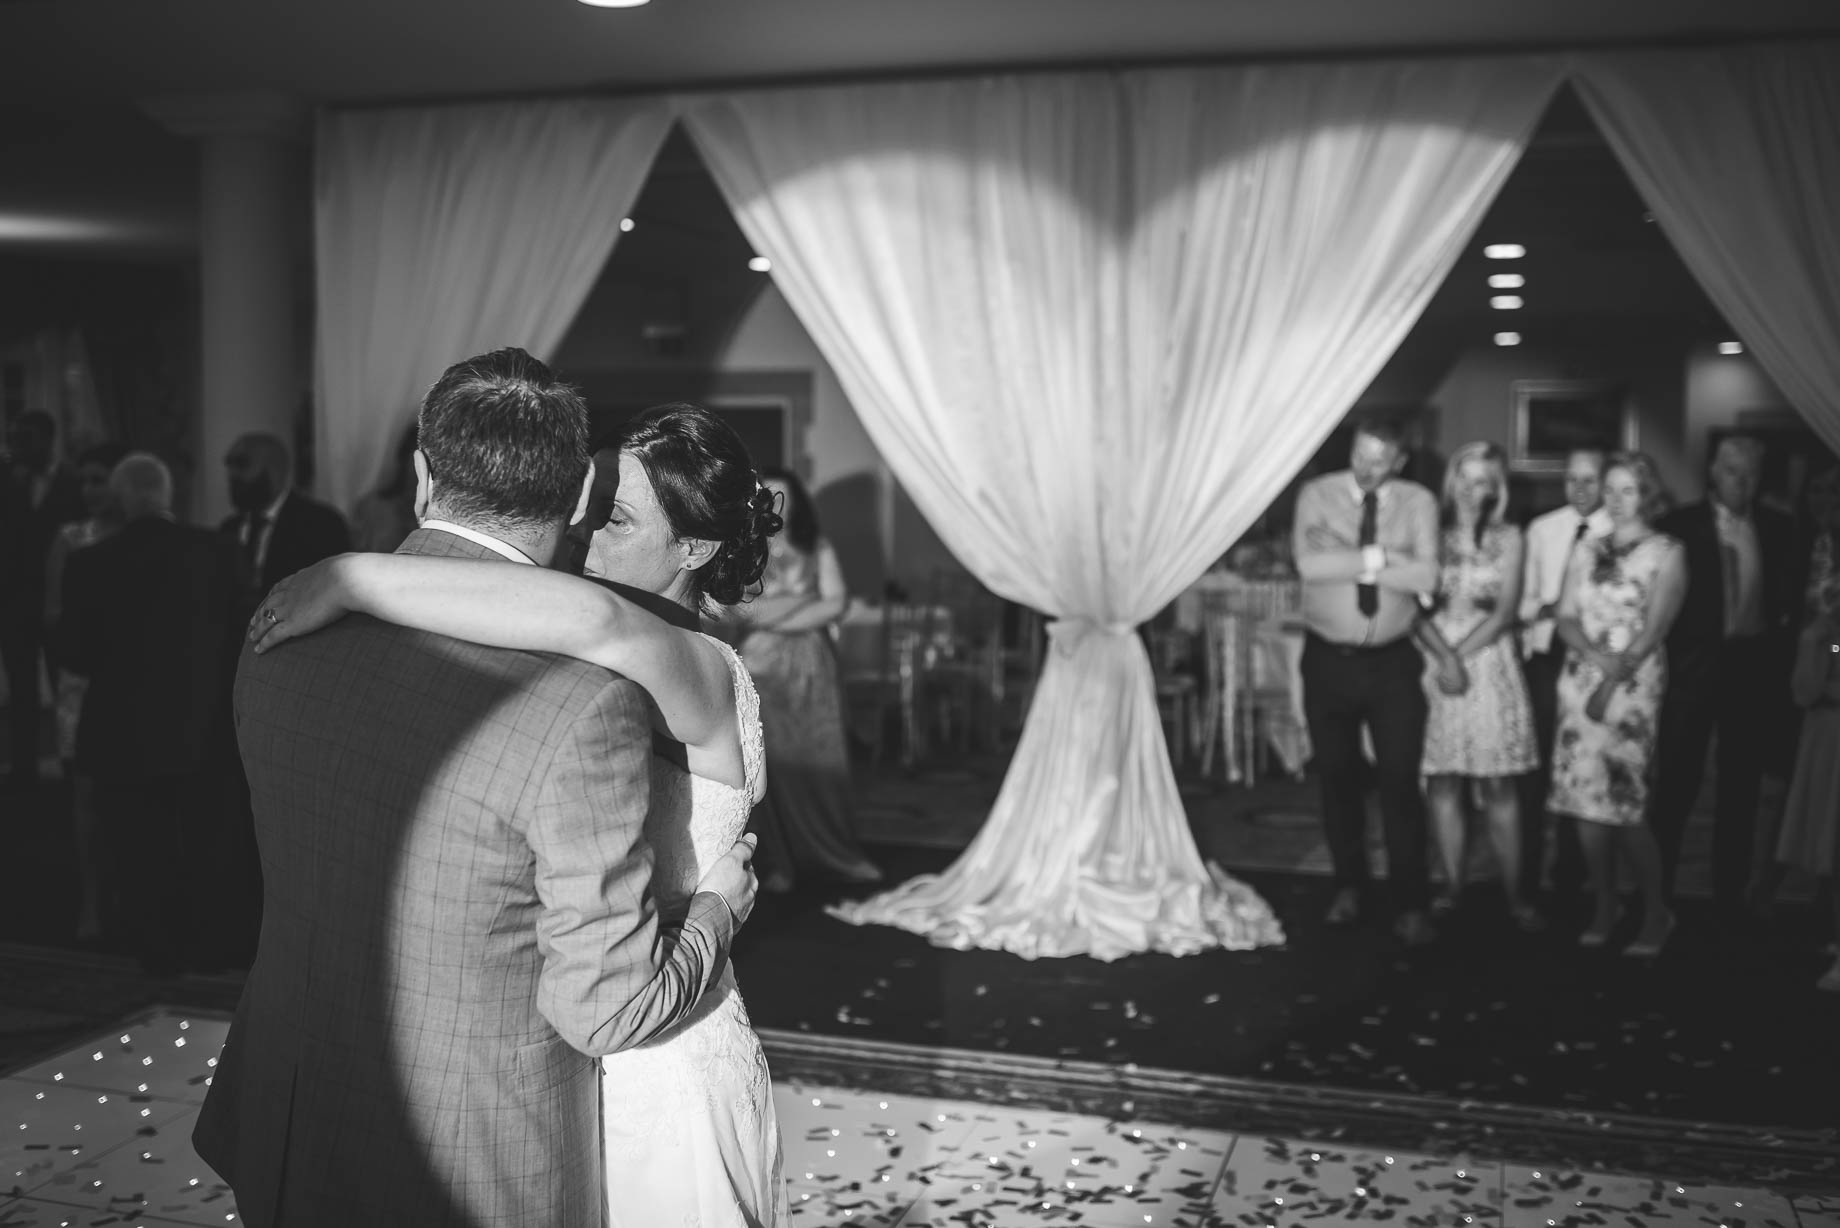 Luton Hoo wedding photography by Guy Collier Photography - Lauren and Gem (176 of 178)